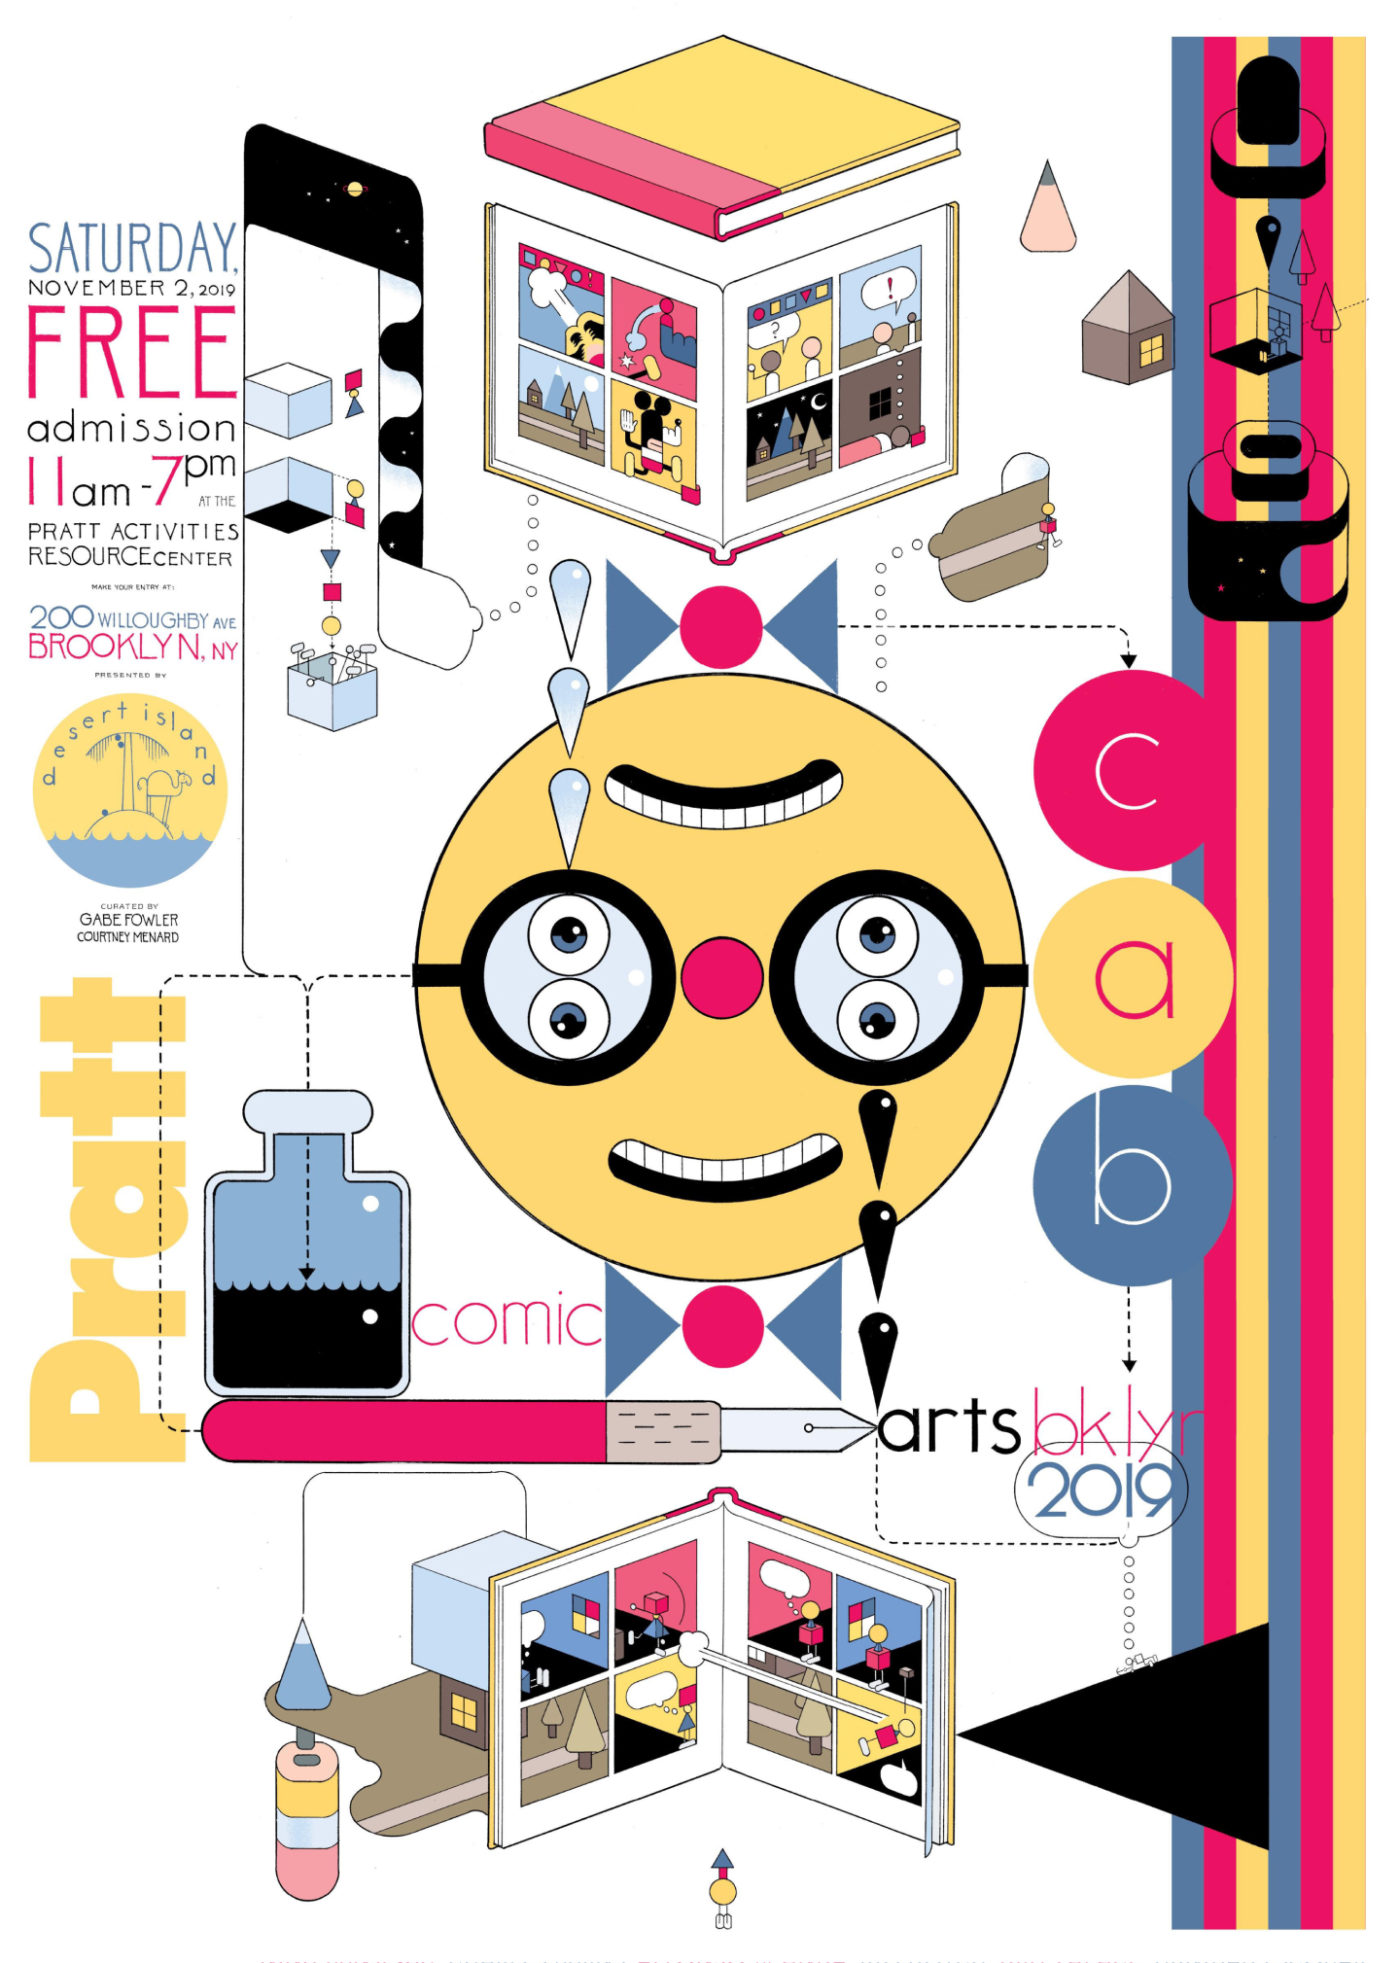 Confira a arte de Chris Ware para o cartaz do Comic Arts Brooklyn 2019